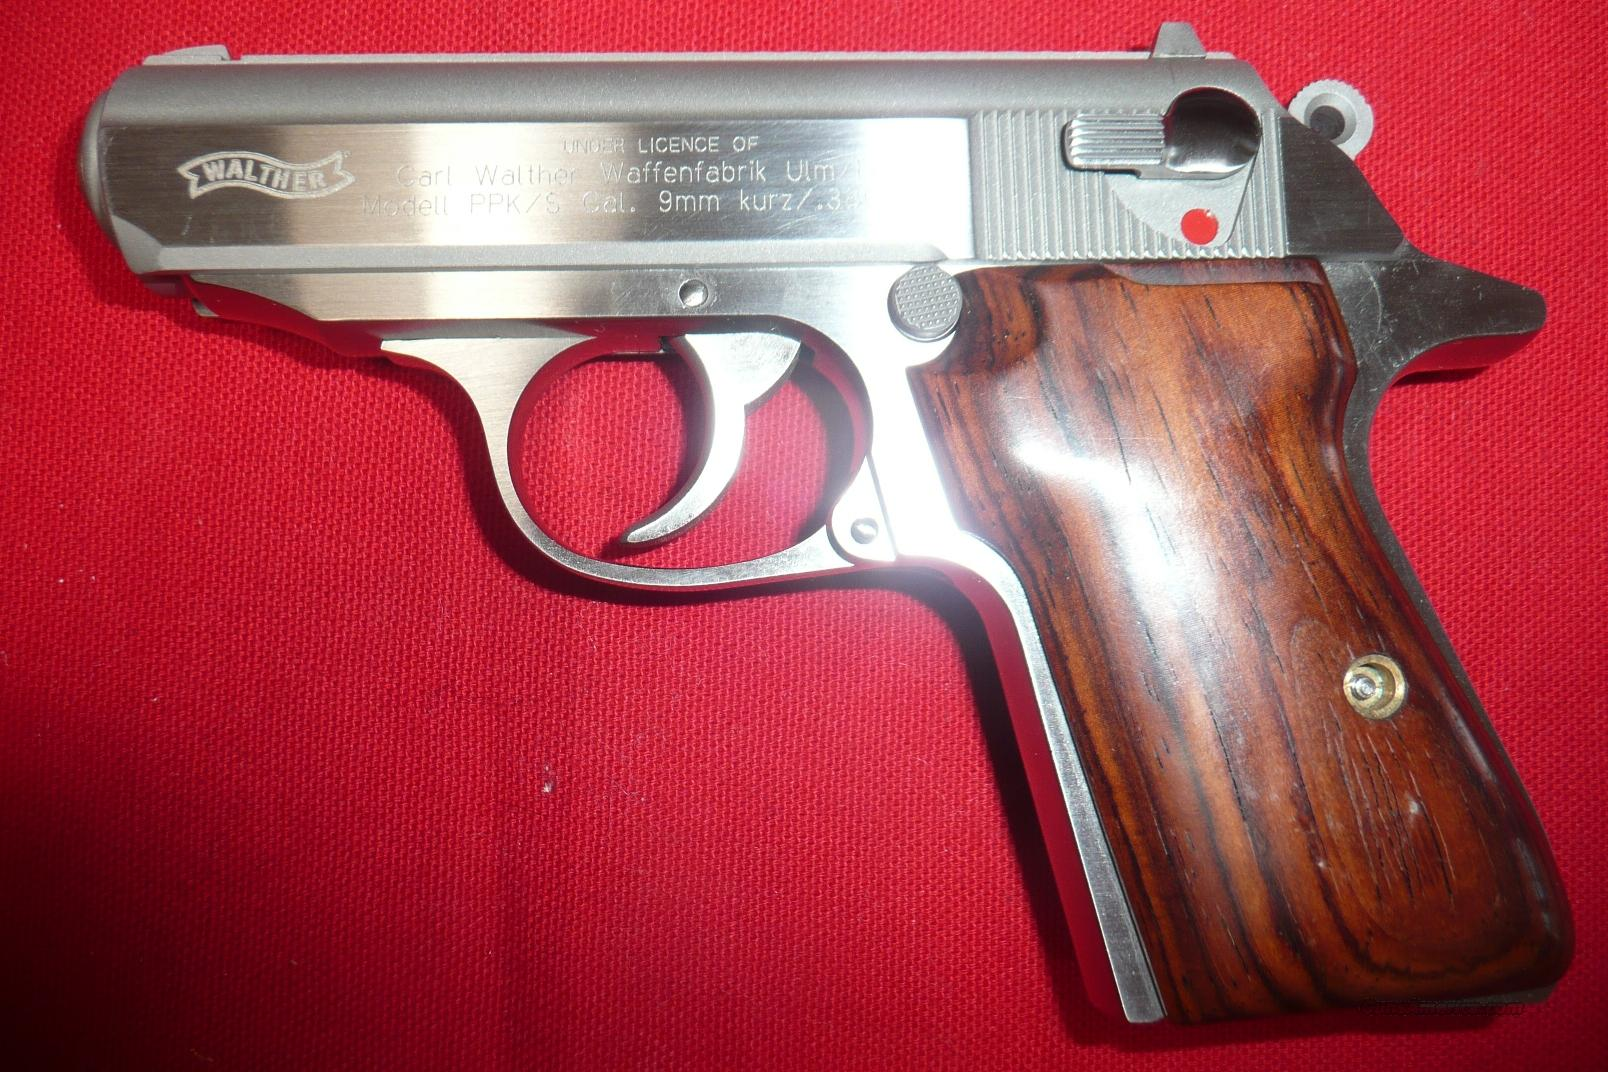 PPK/S S&W Walther 380acp Stainless   Guns > Pistols > Smith & Wesson Pistols - Autos > Steel Frame